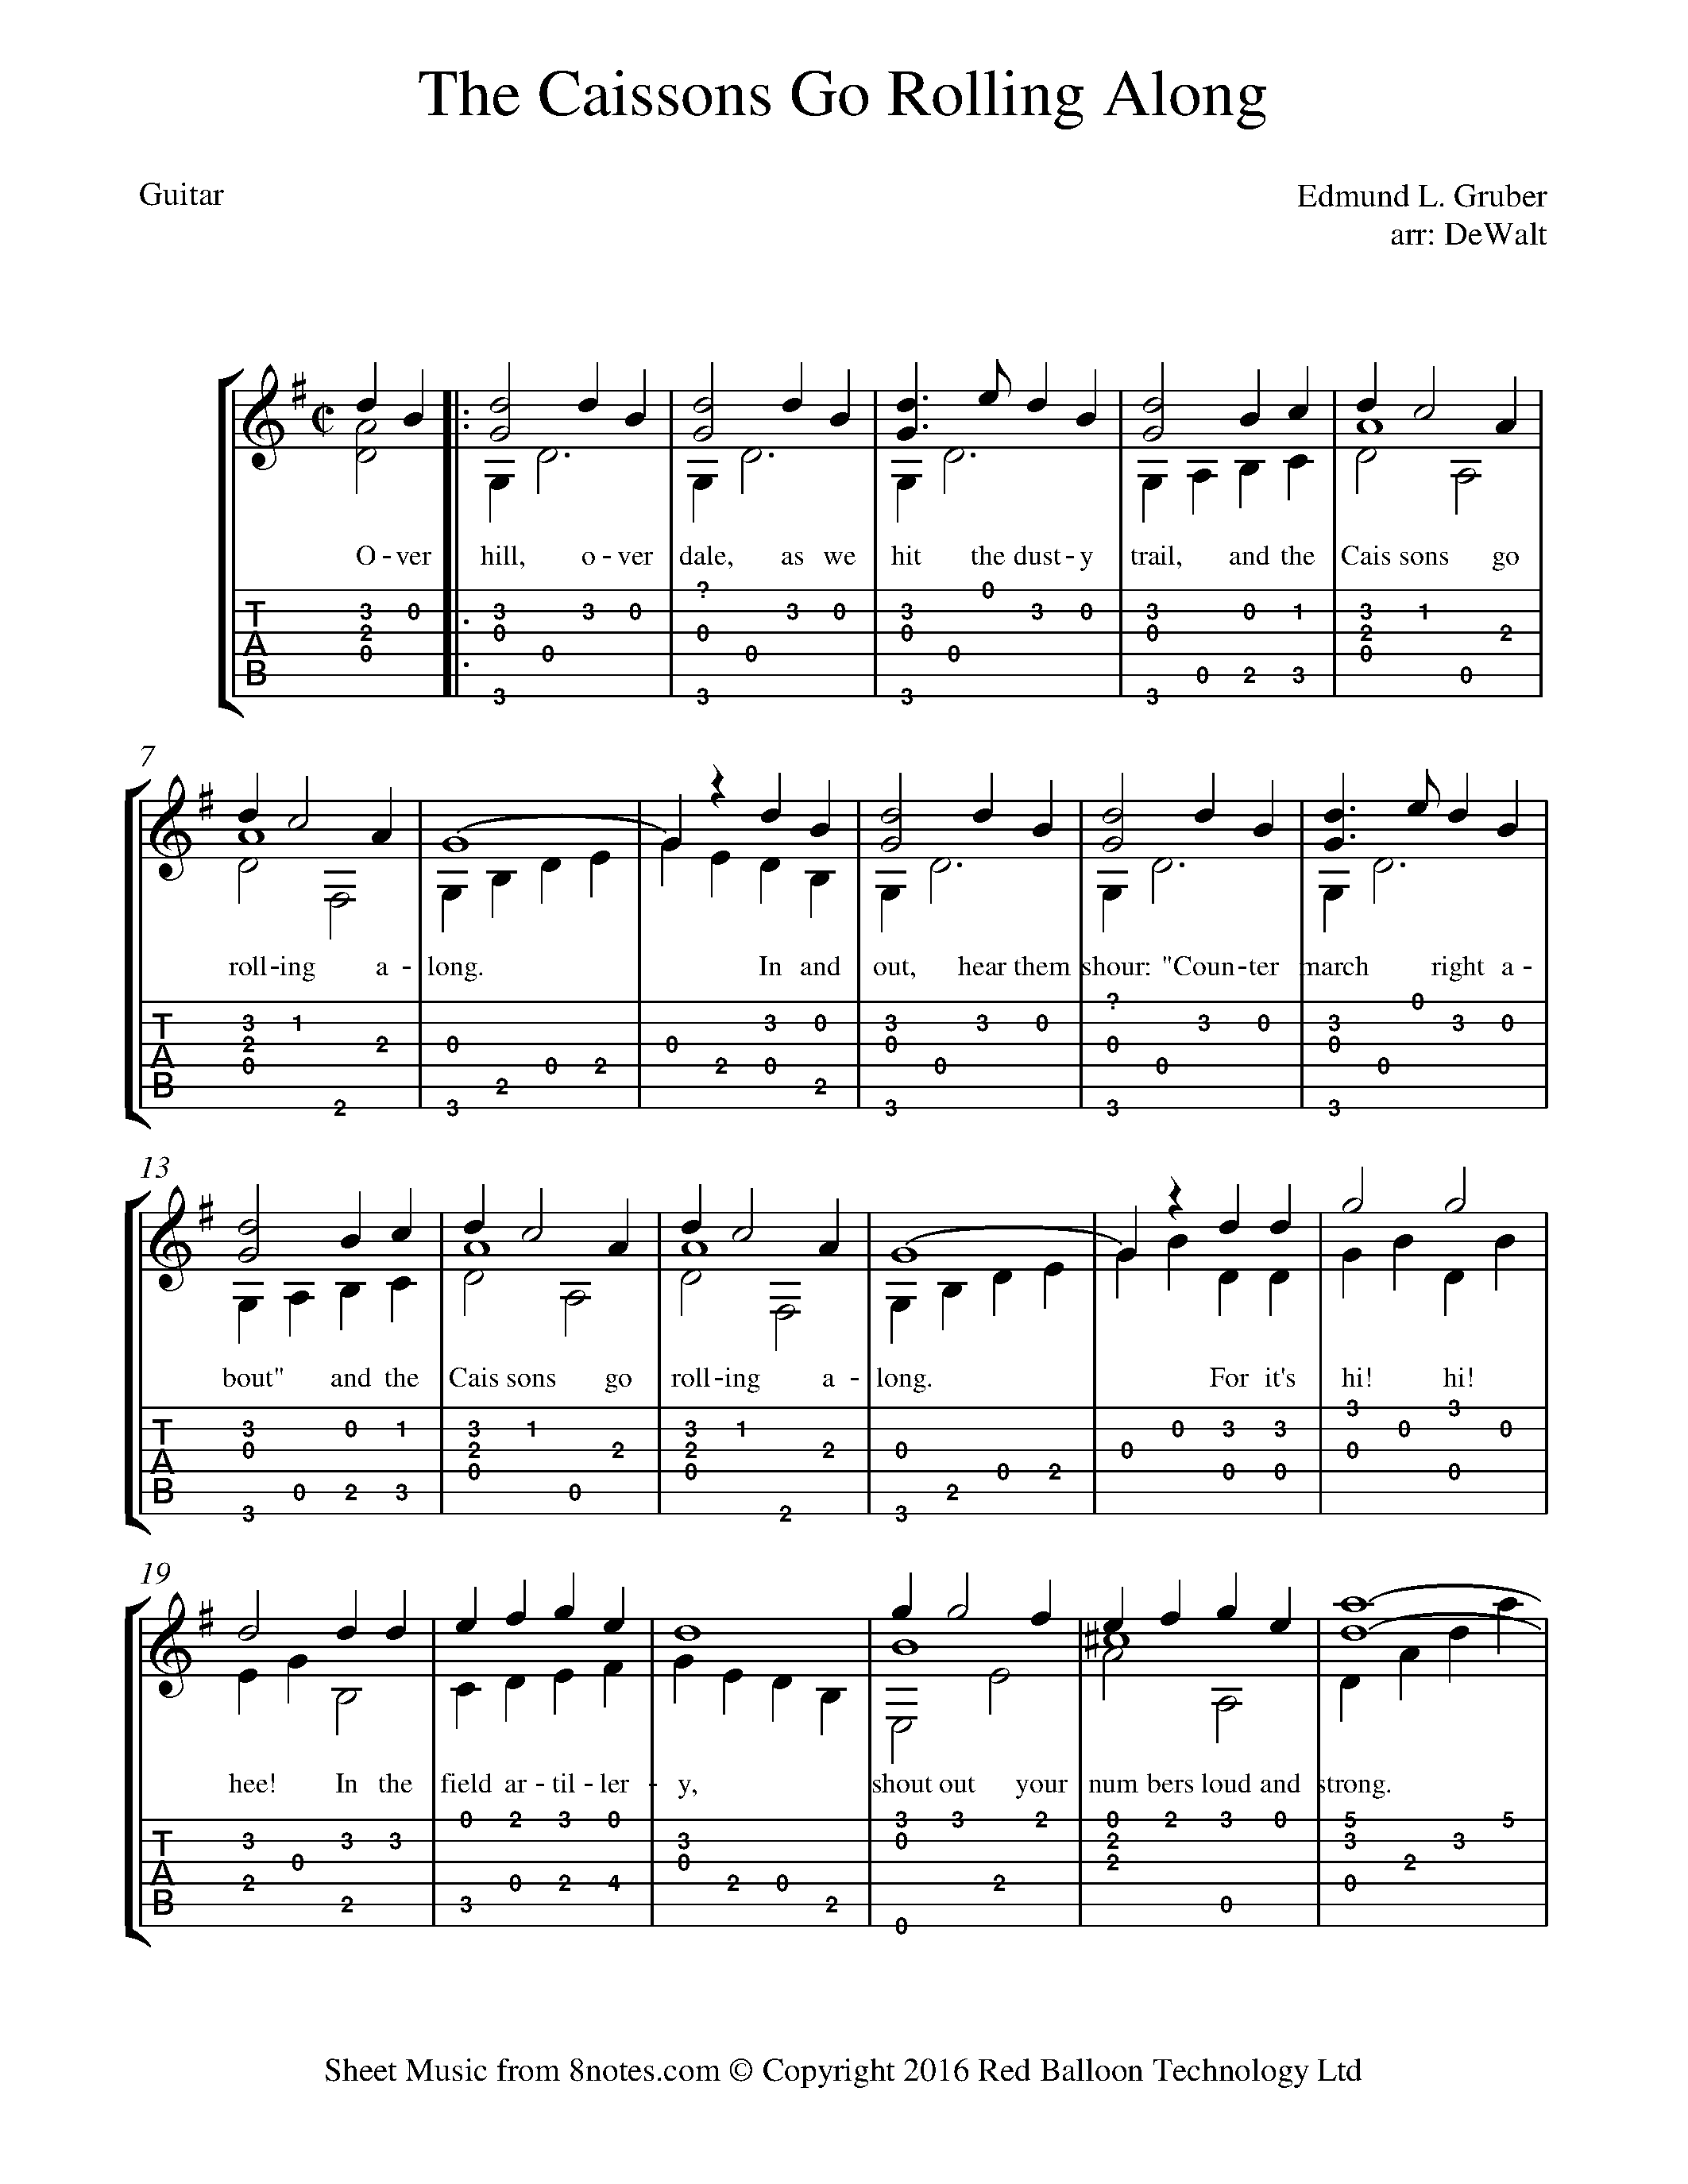 Free Guitar Sheet Music, Lessons & Resources - 8notes com